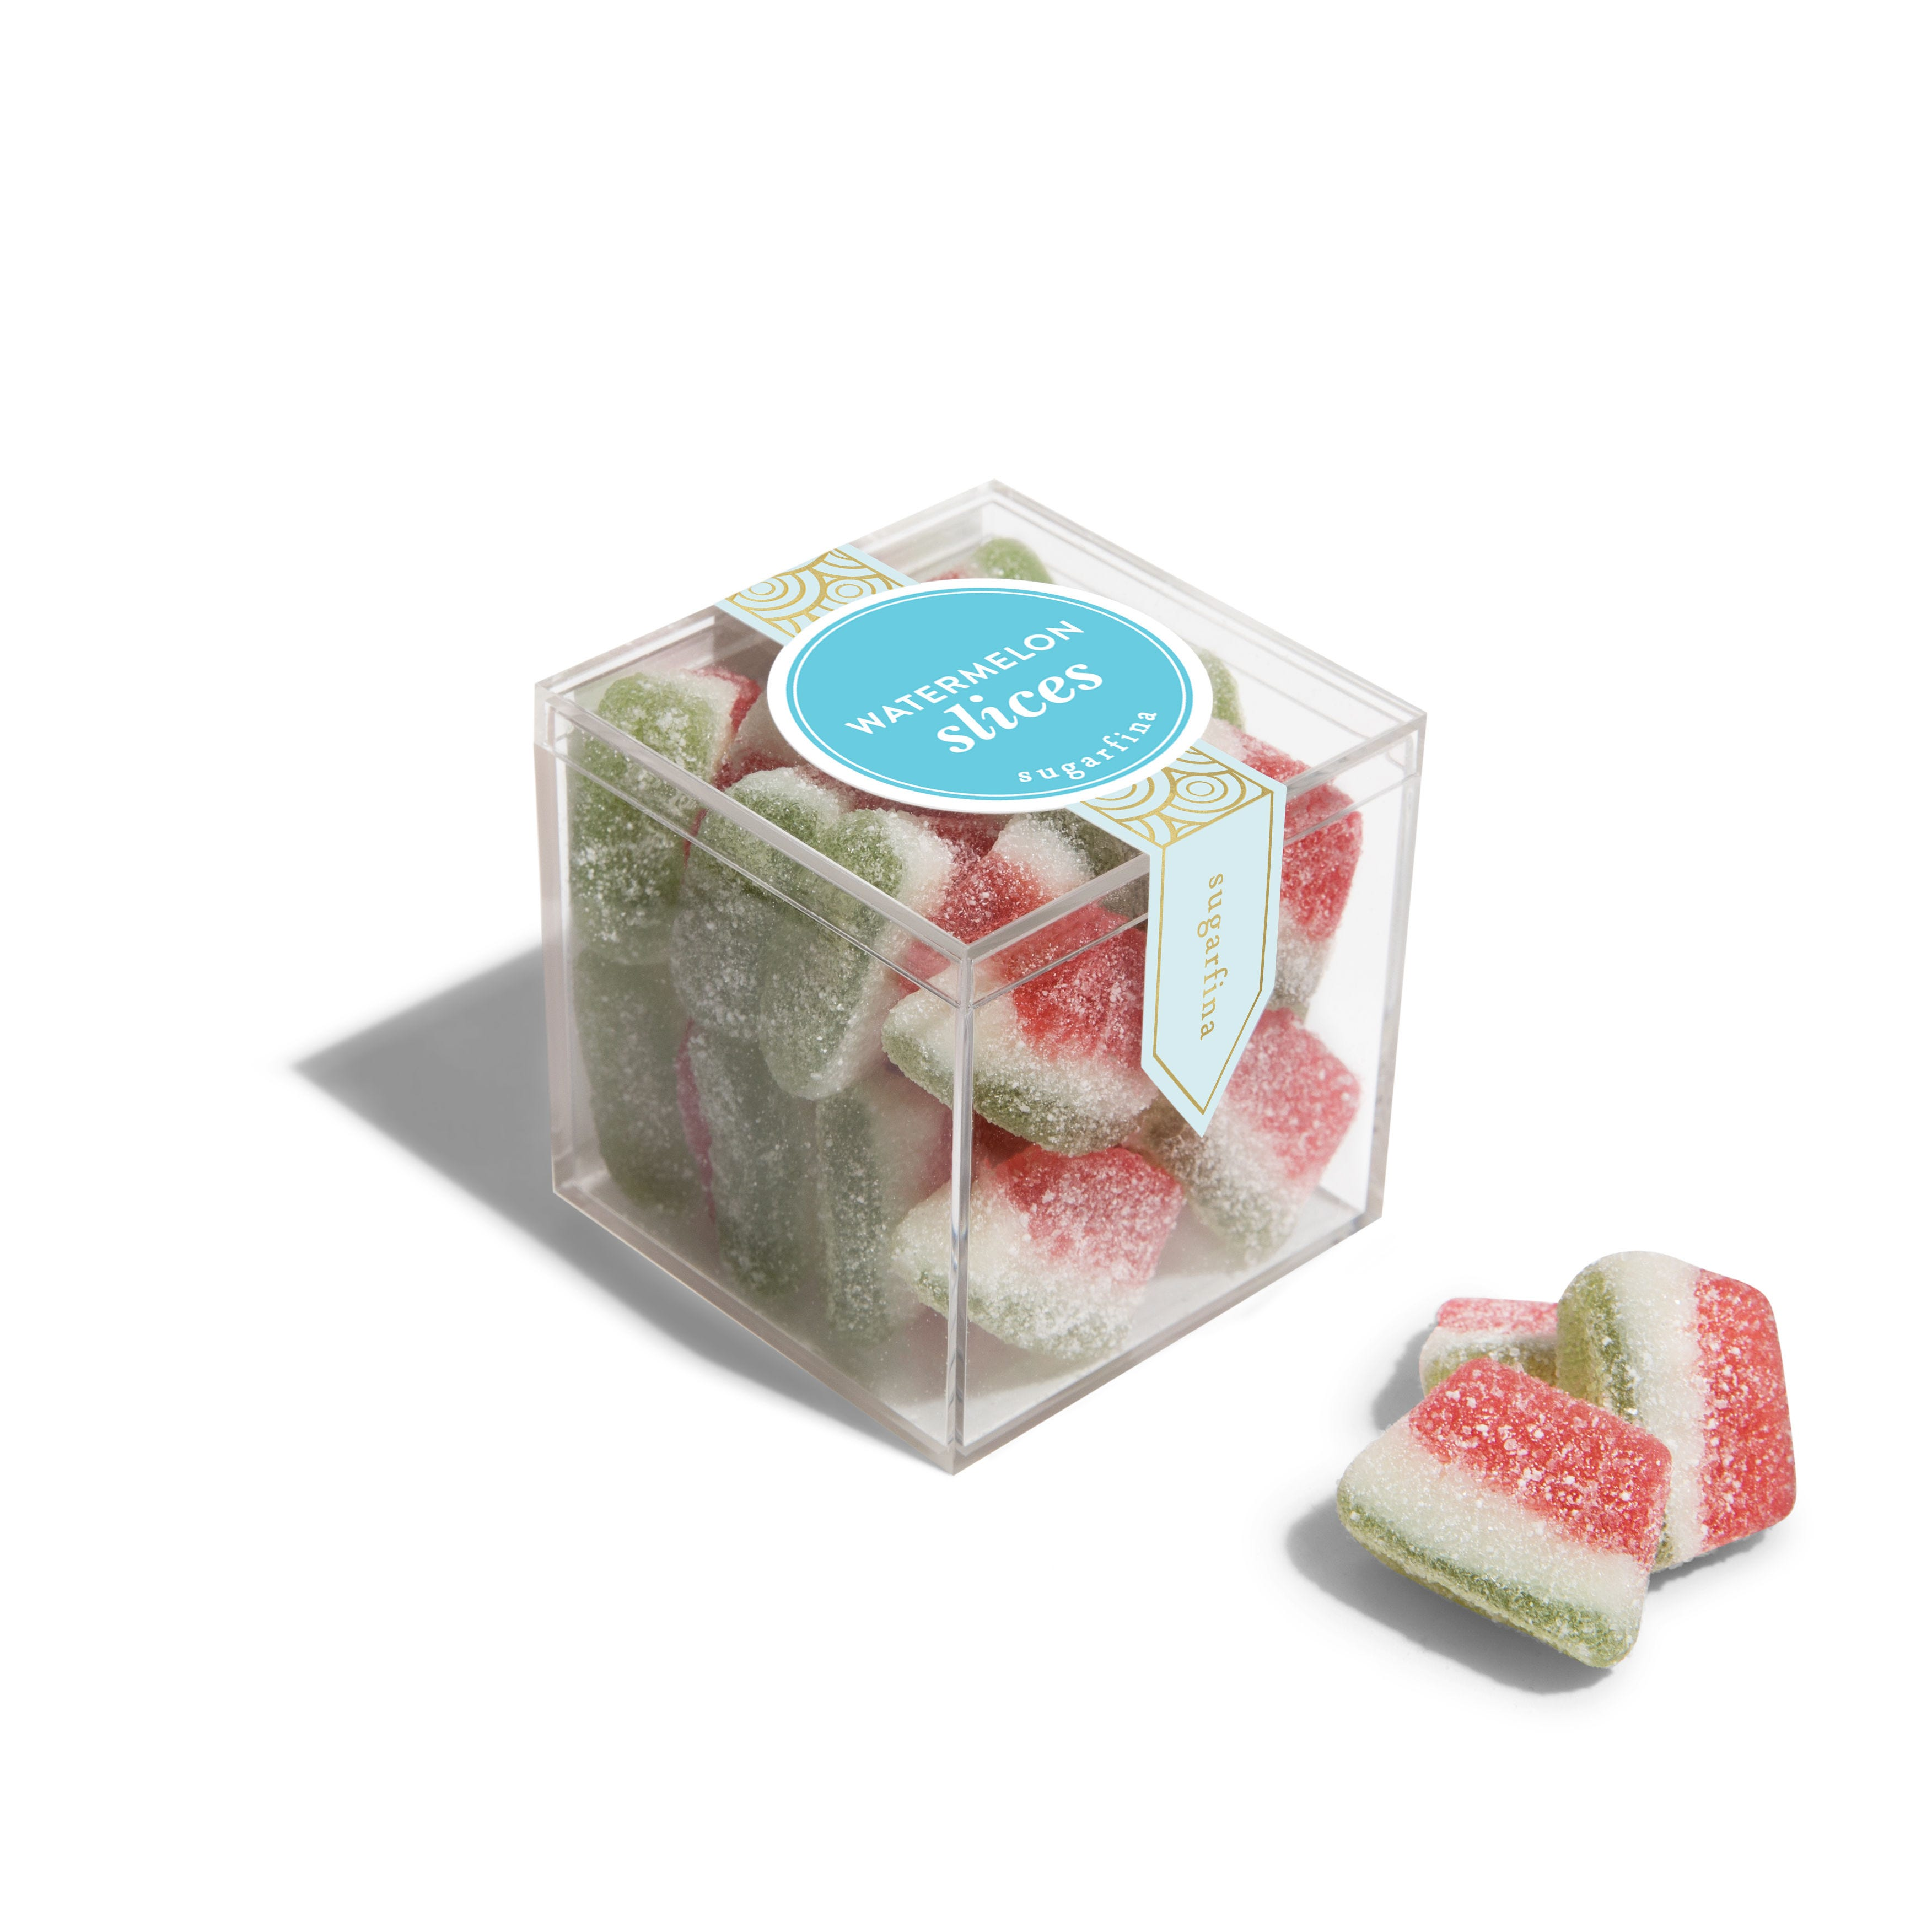 Watermelon Slices - Small Candy Cube